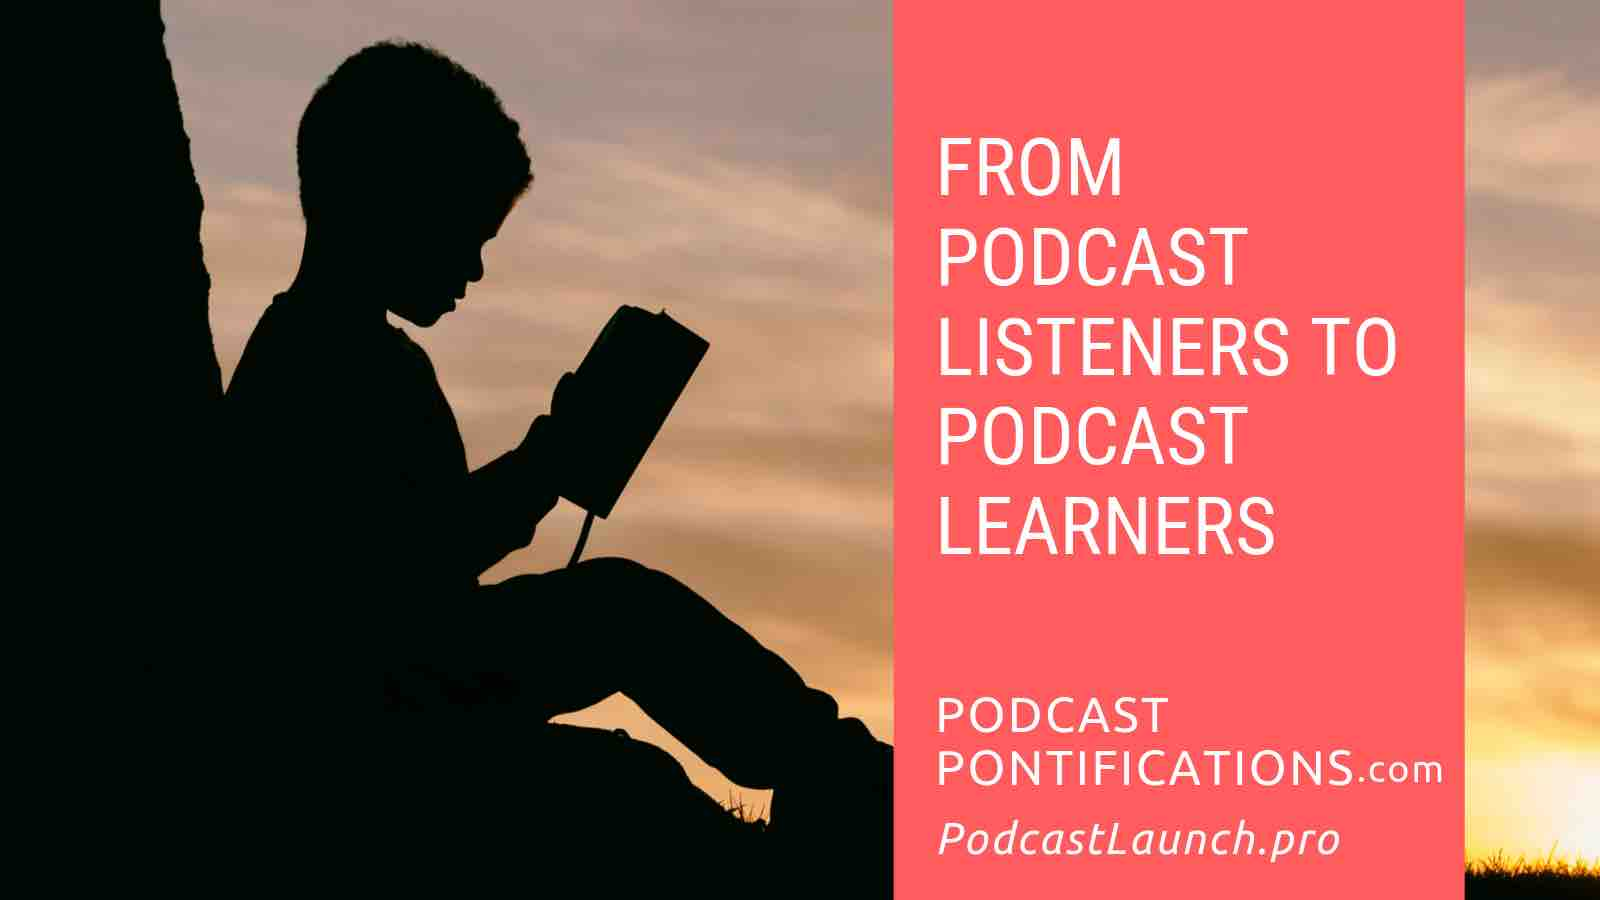 From Podcast Listeners to Podcast Learners